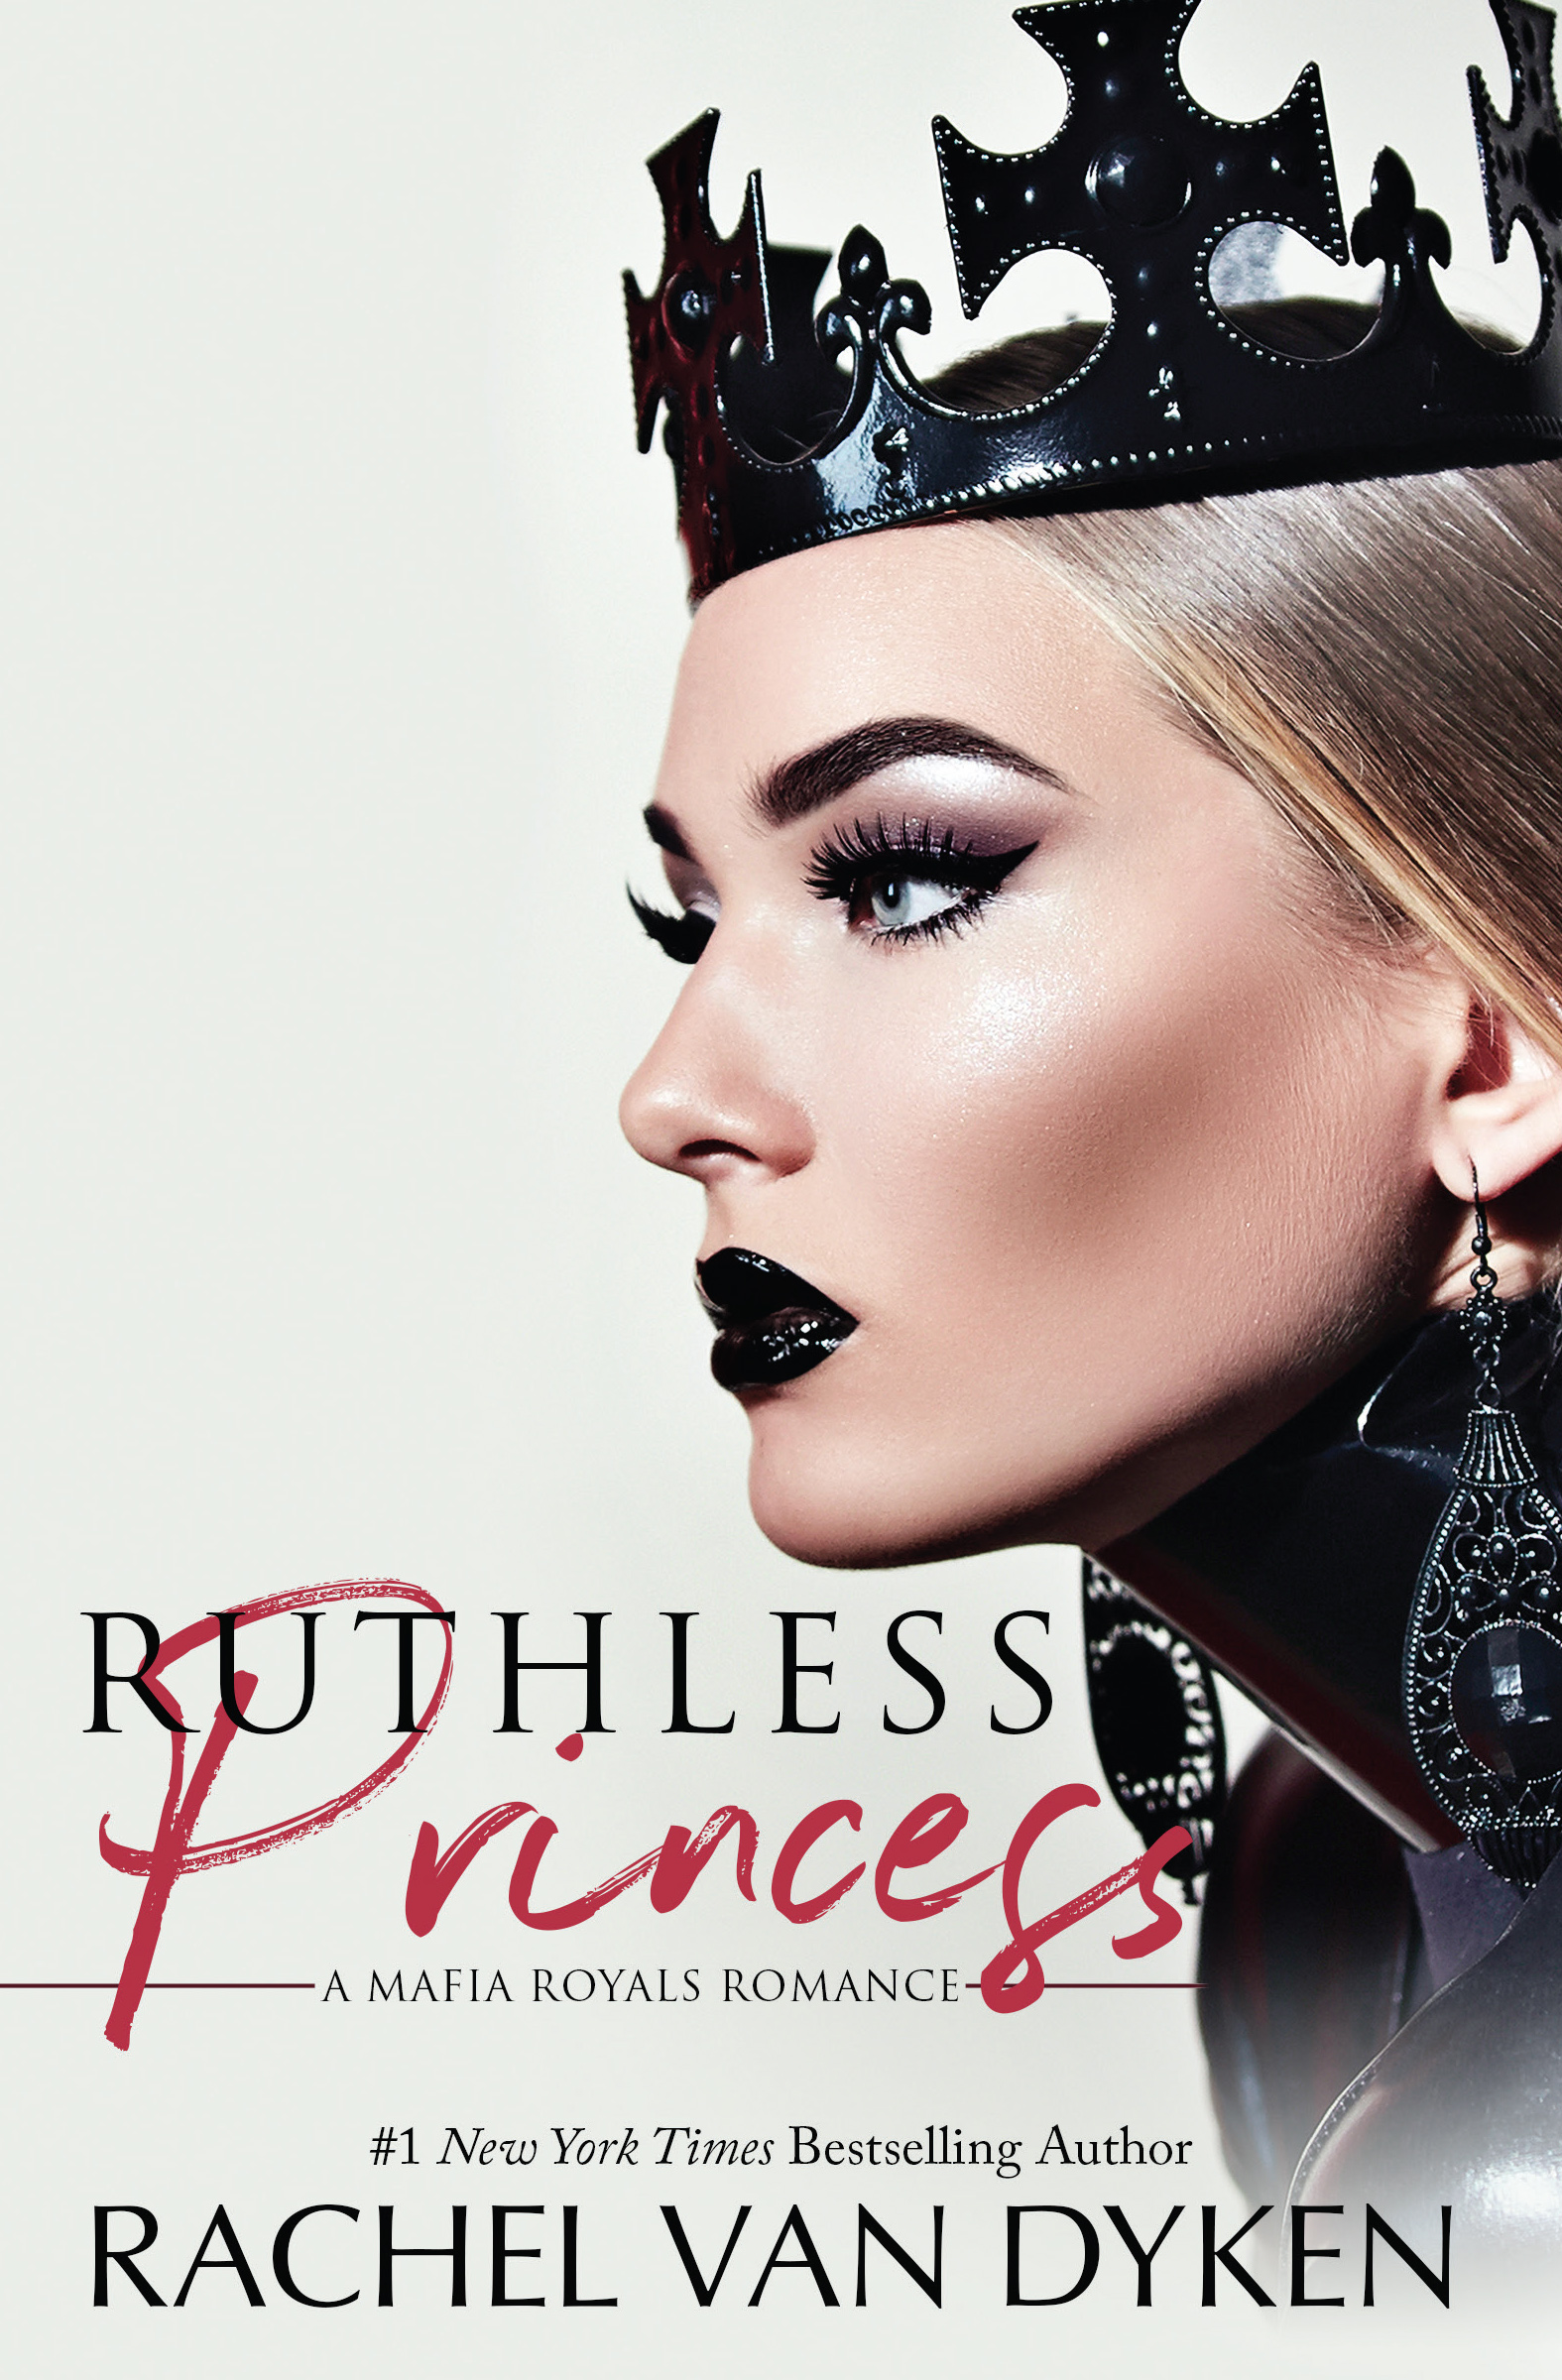 Blog Tour: Ruthless Princess by Rachel Van Dyken with Excerpt